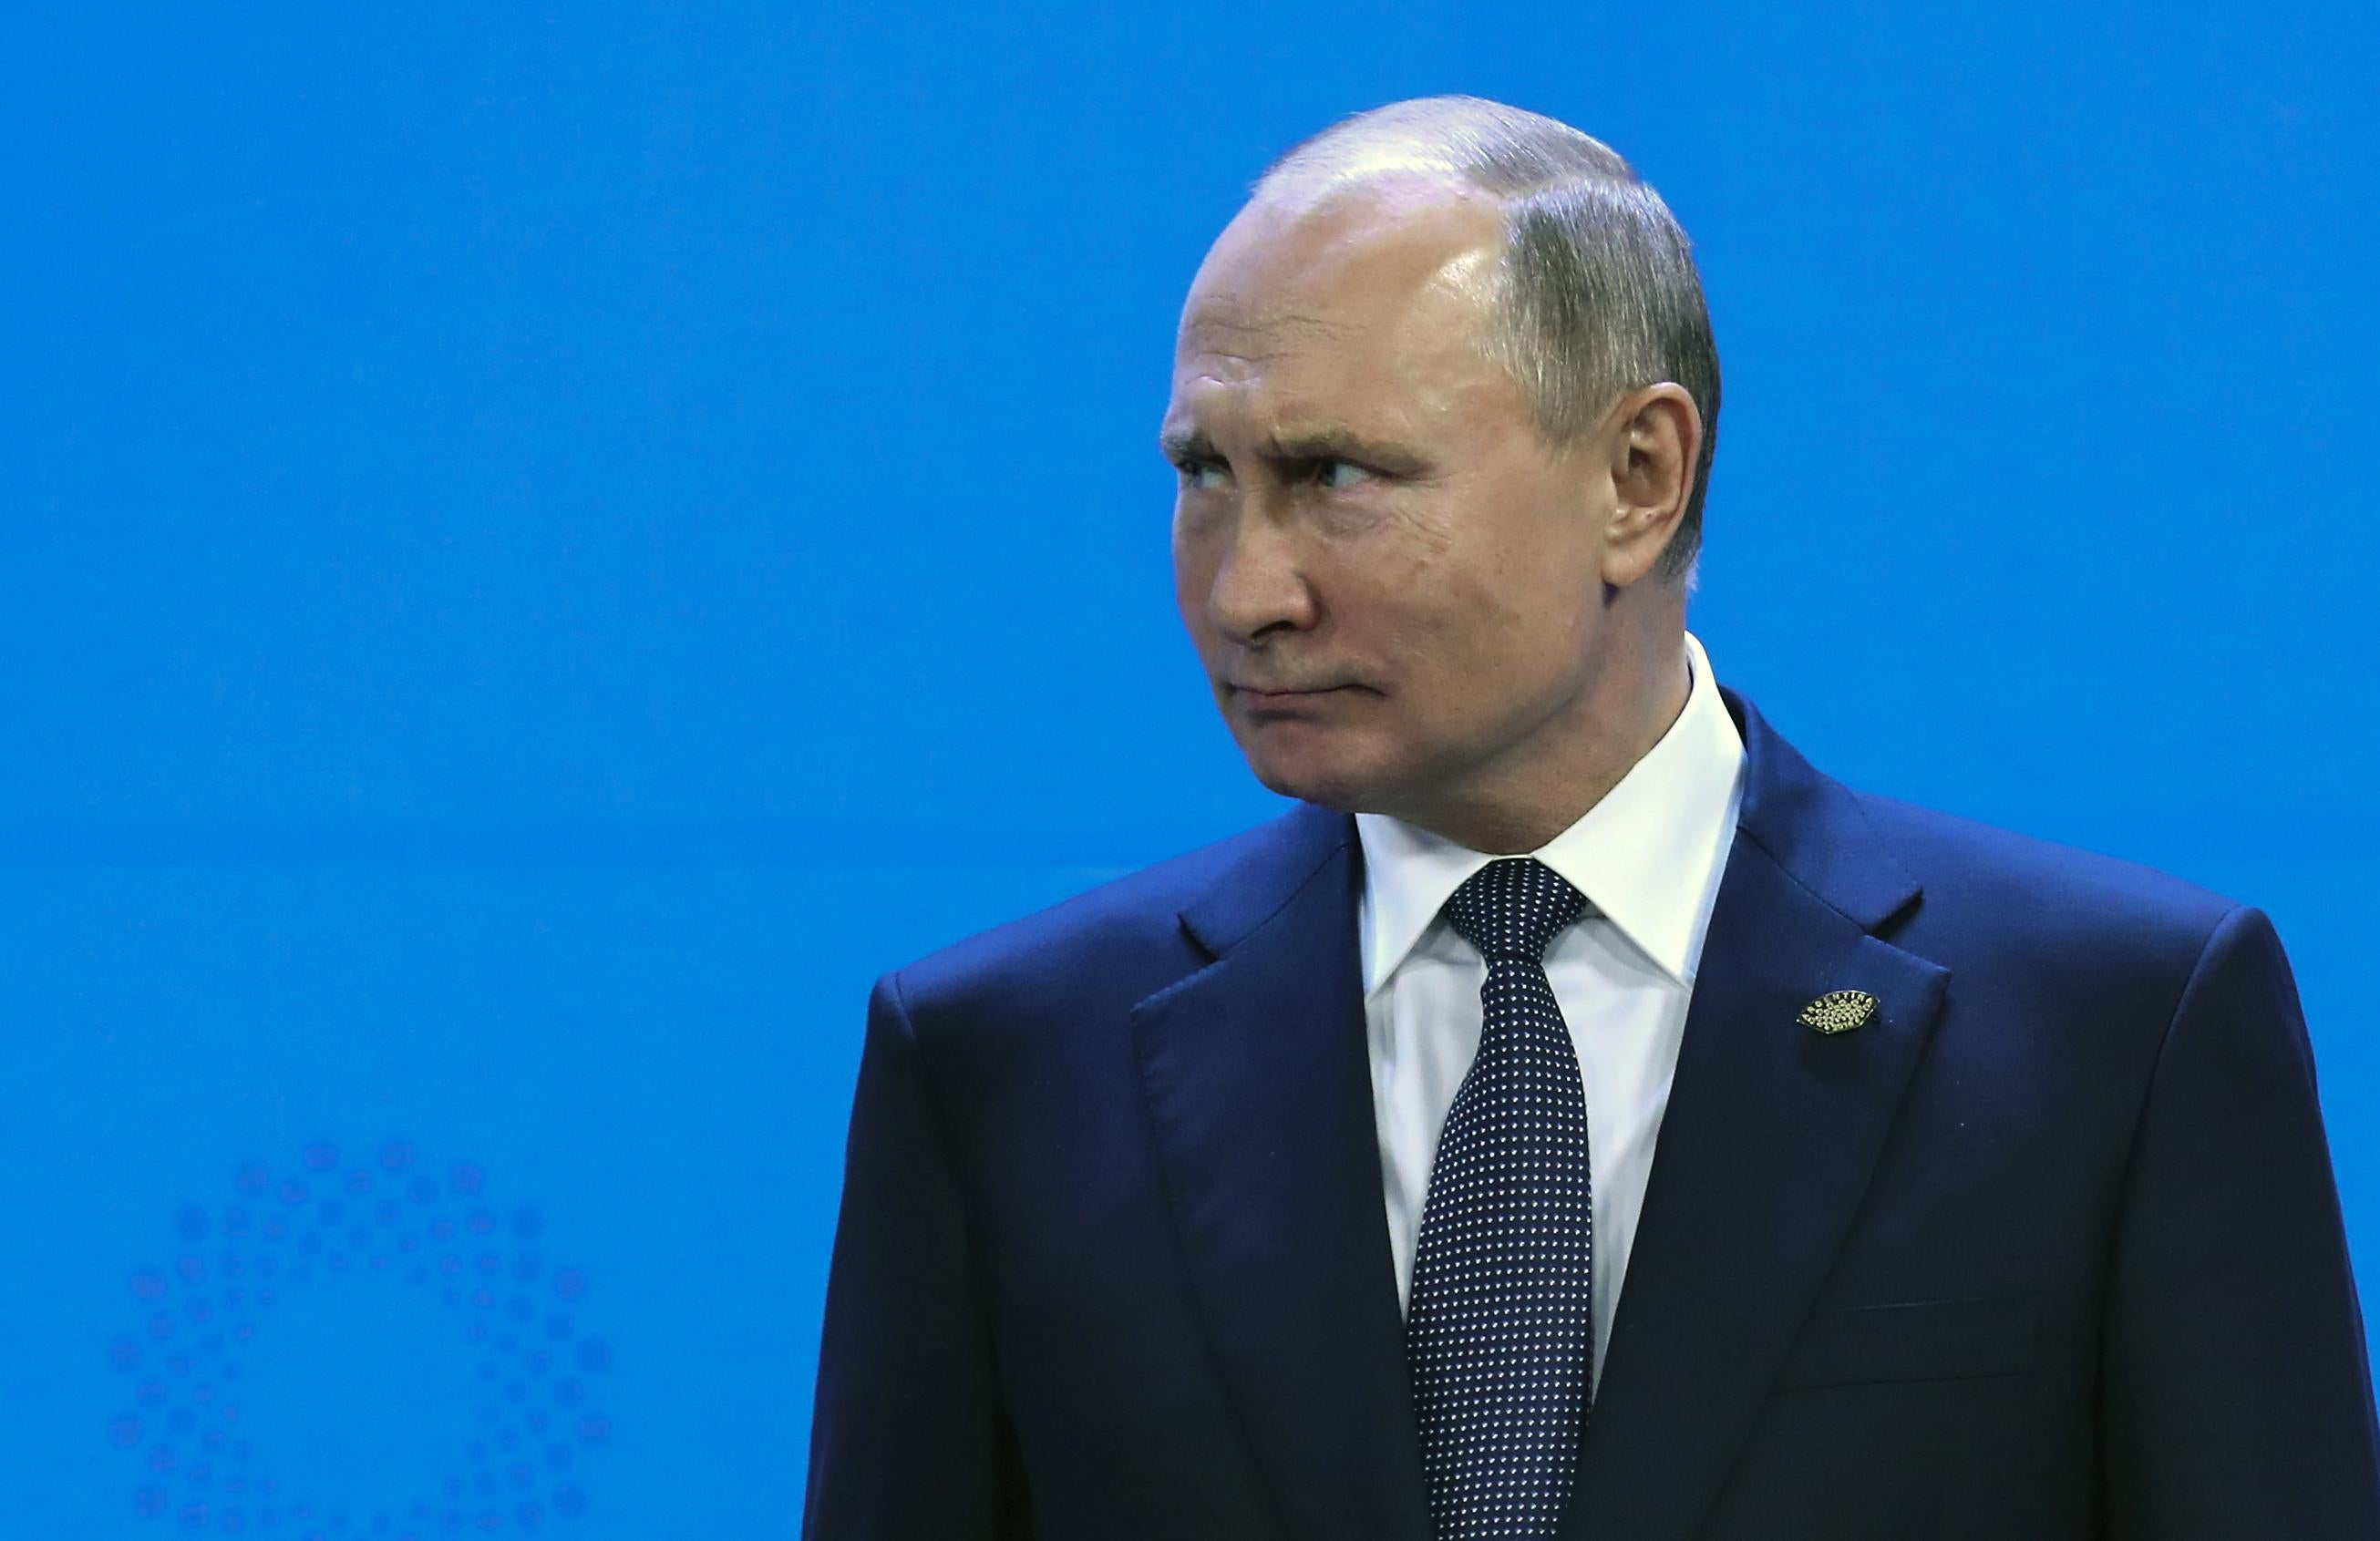 Vladimir Putin at the G20 Leaders' Summit photo in Buenos Aires